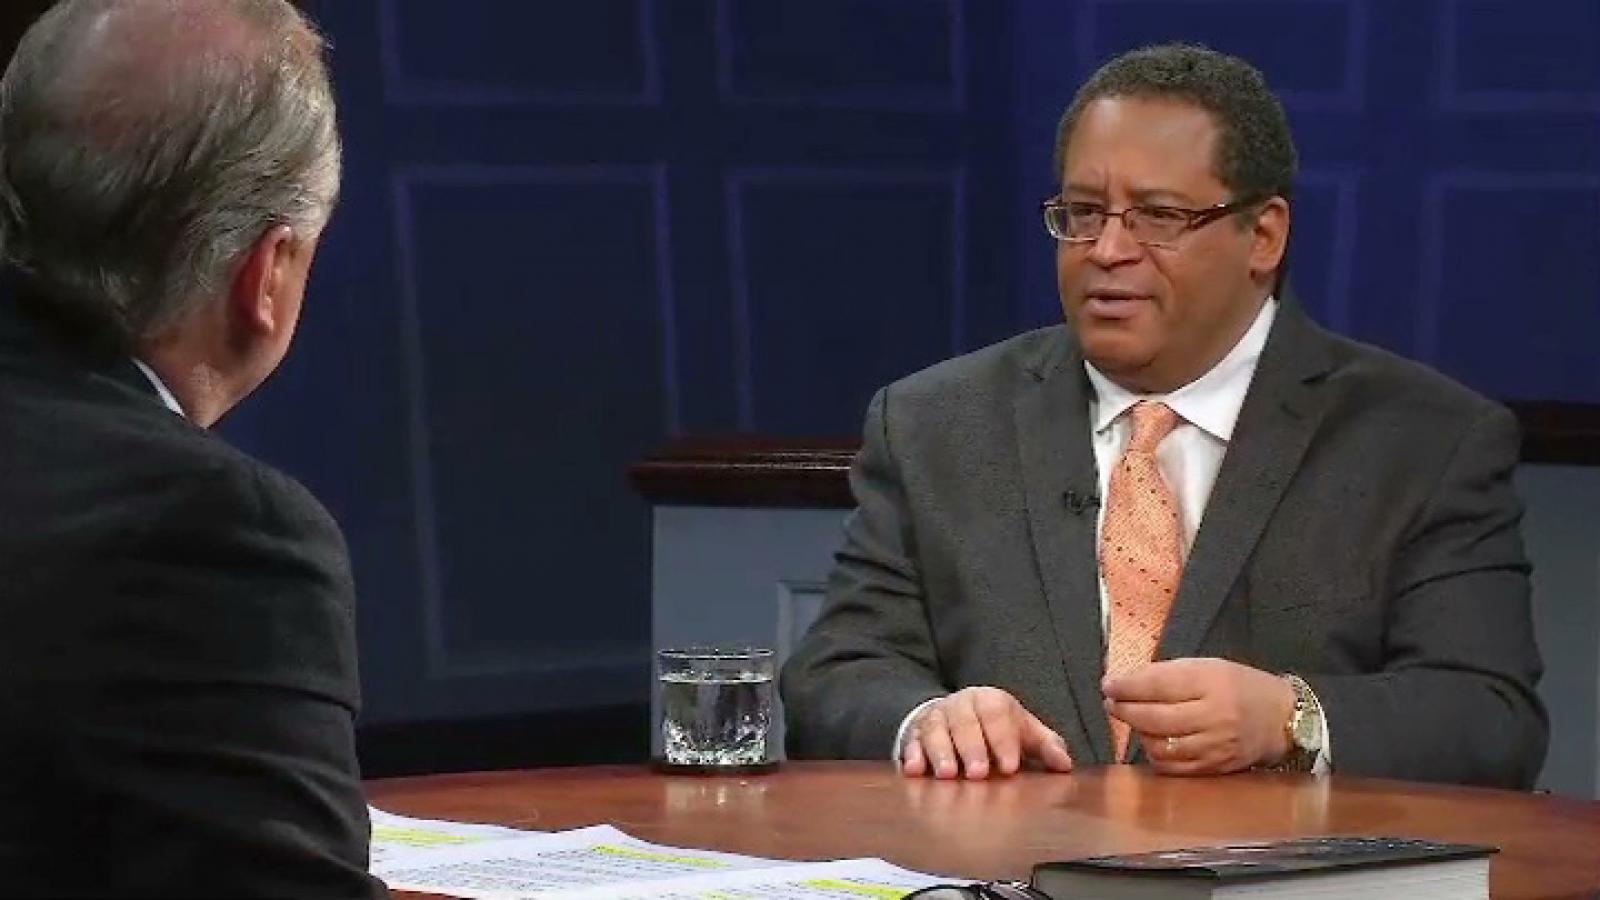 Michael Eric Dyson discusses his new book, The Black Presidency: Barack Obama and the Politics of Race in America